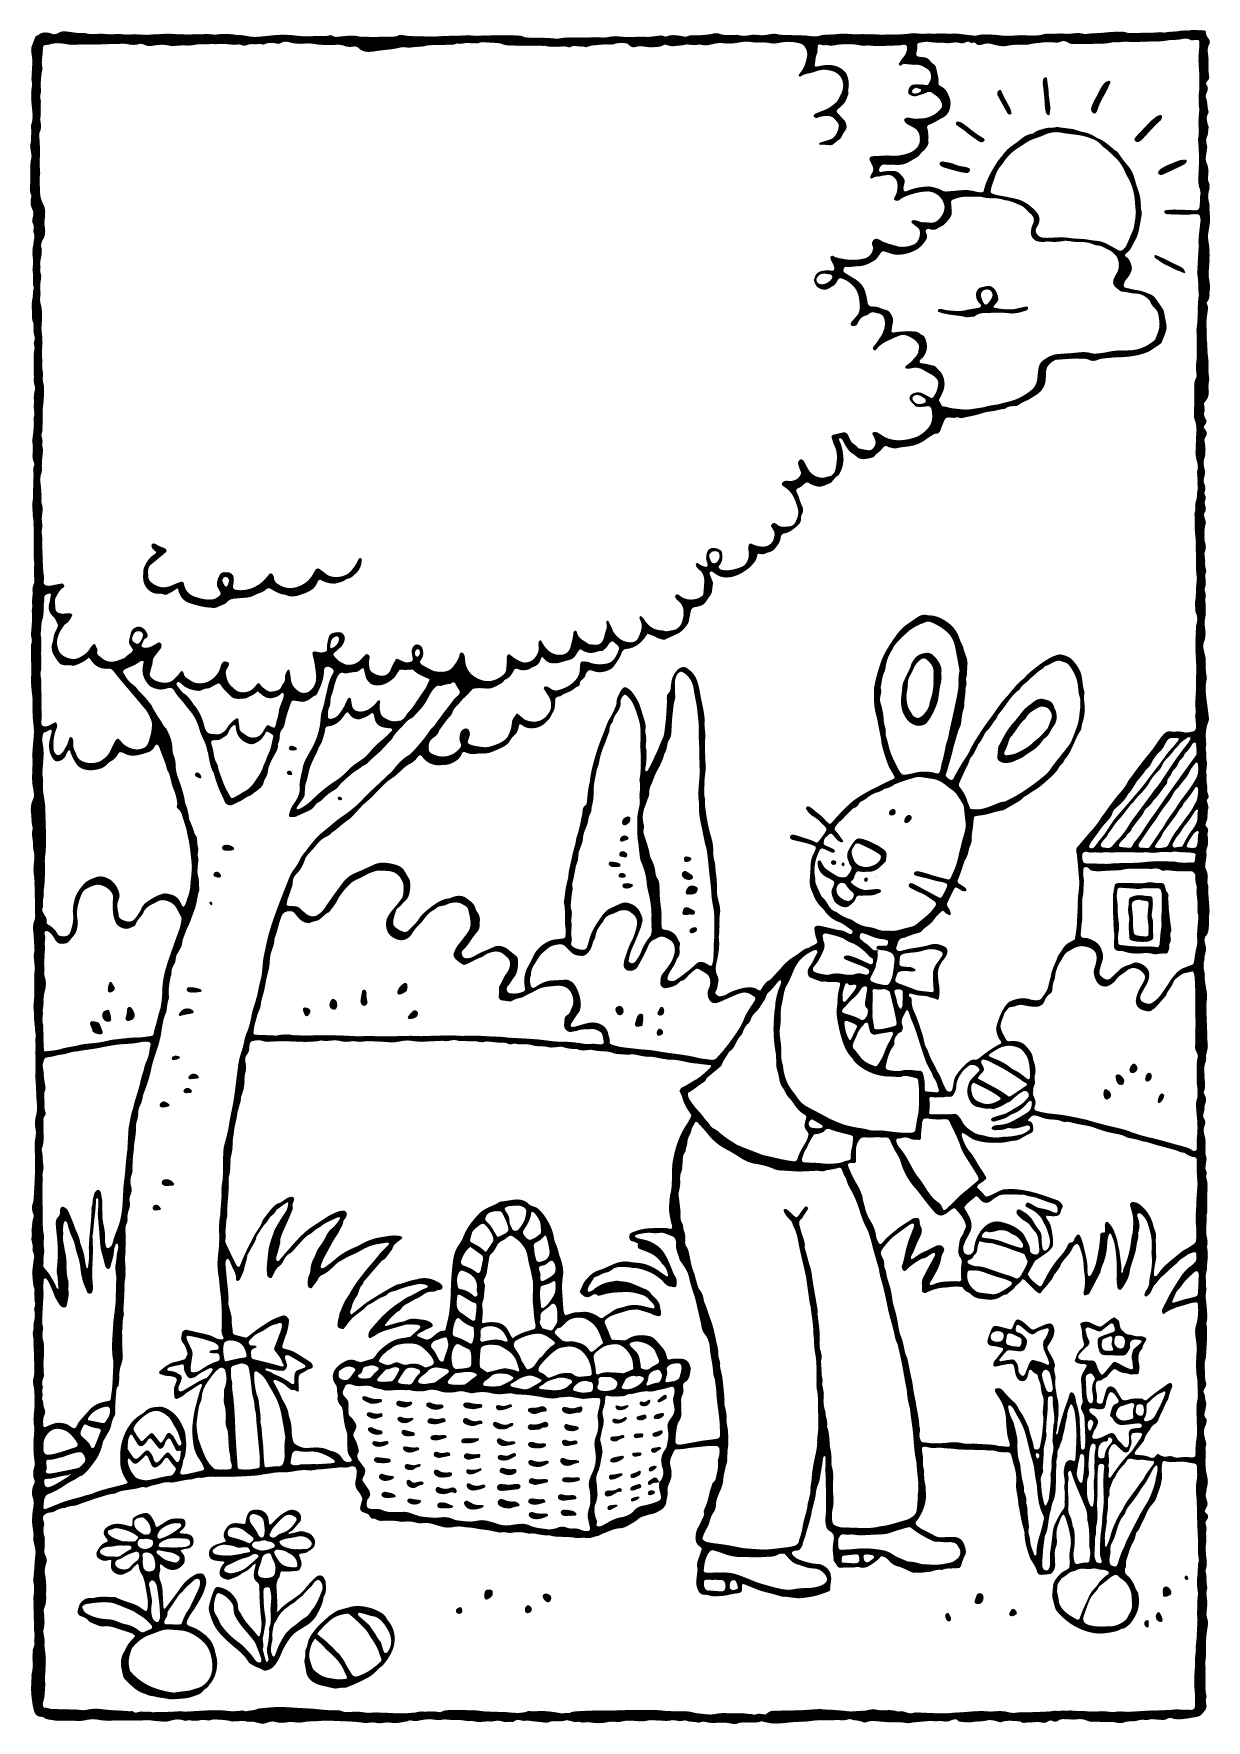 the Easter bunny hides Easter eggs colouring page drawing picture 01V